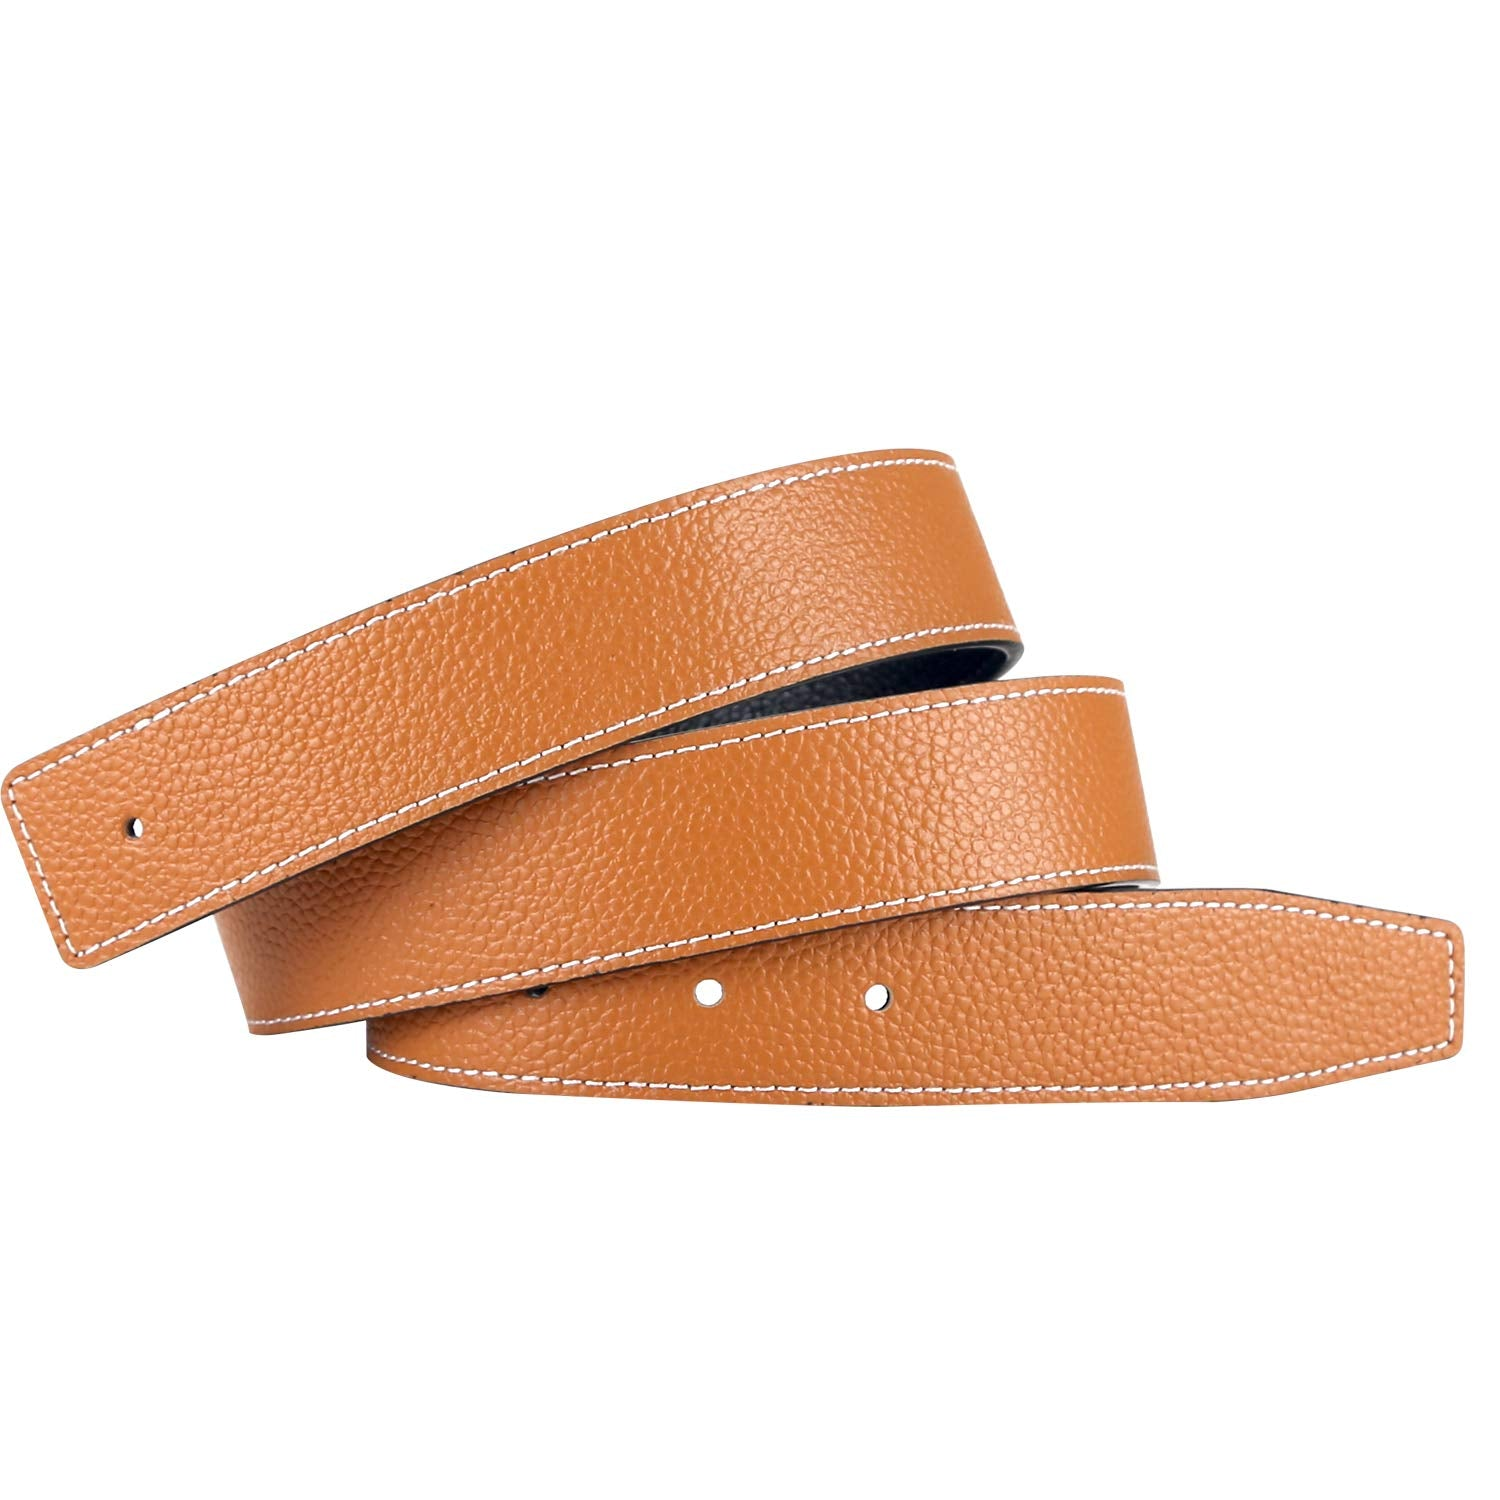 Replacement Leather Belt Strap Reversible Replacement Belt Strap Genuine Leather 1 1/4